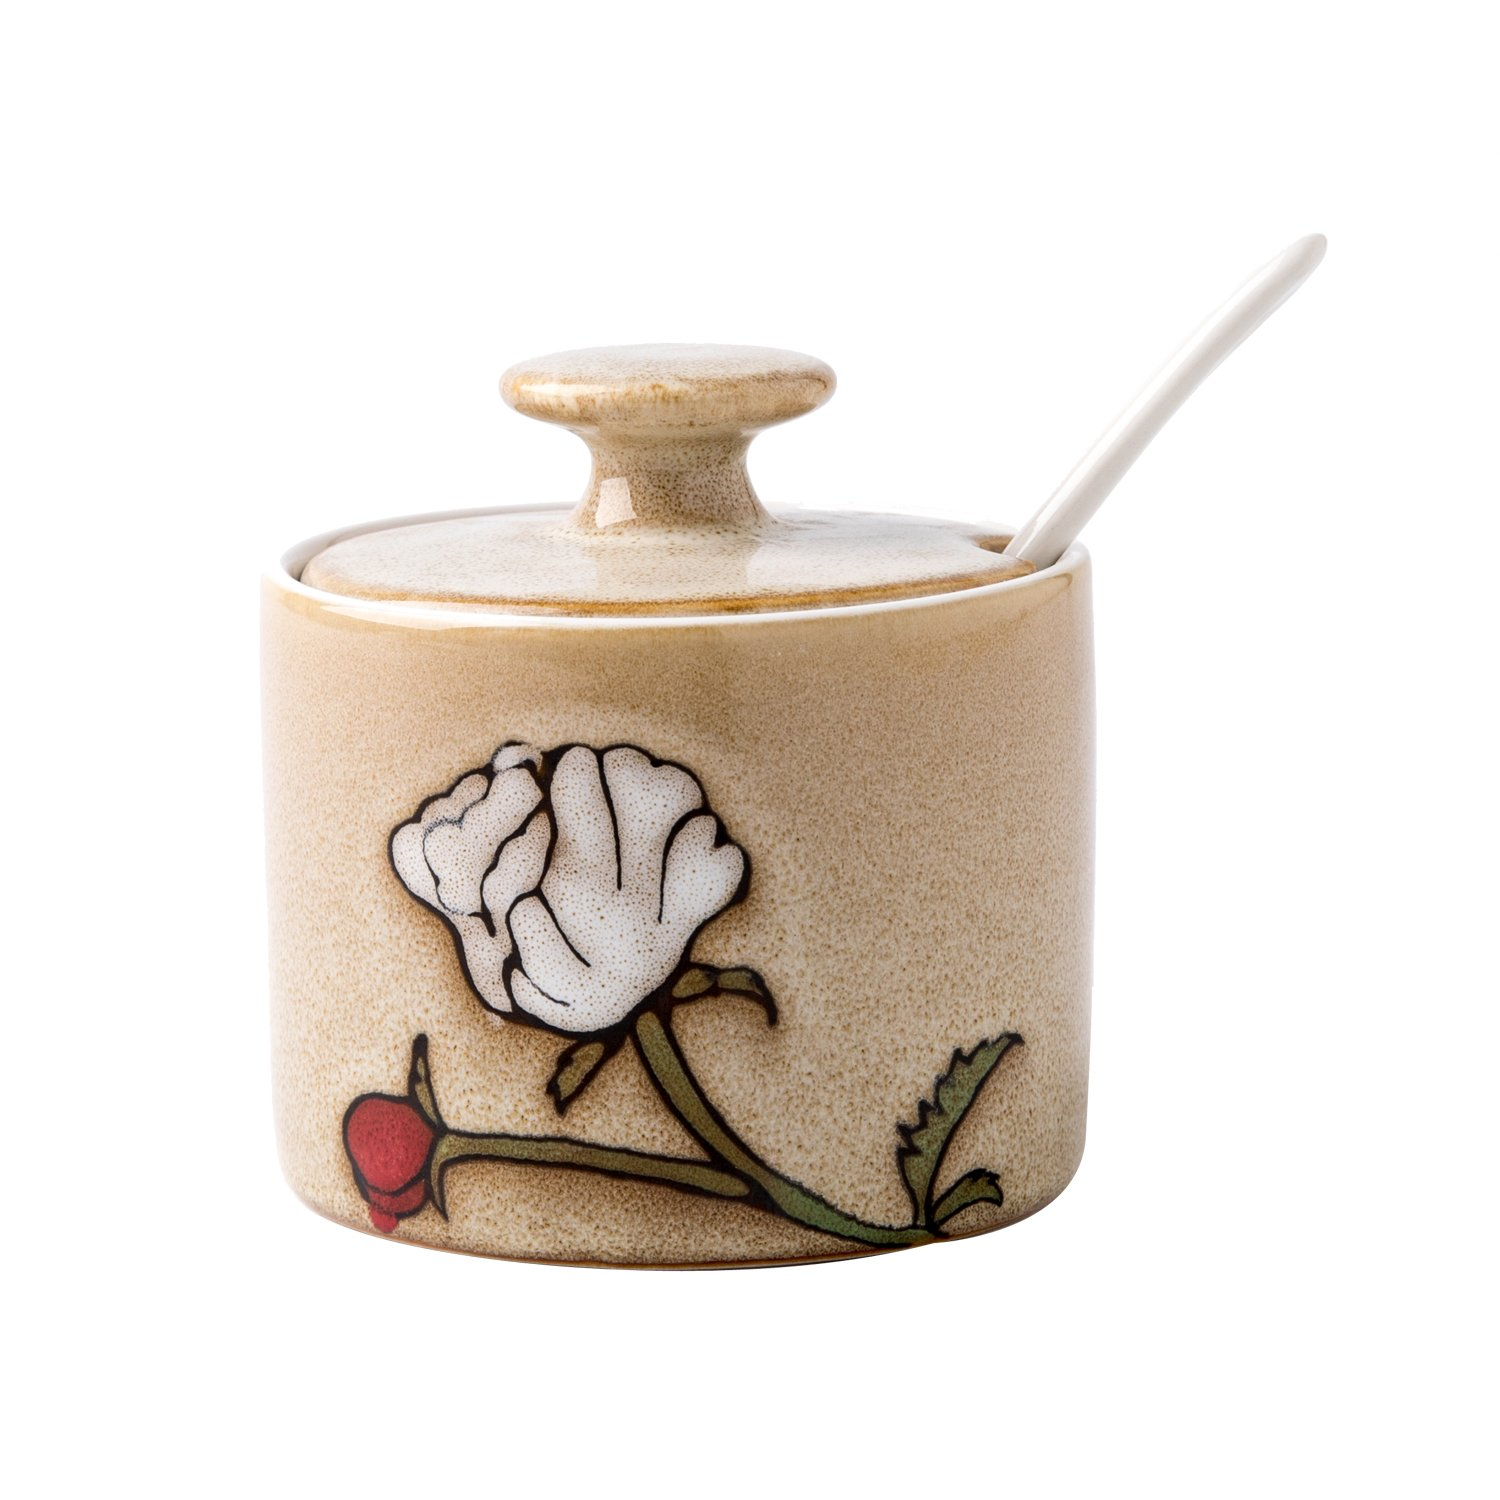 Verdental Flower Pattern 9.2 OZ Ceramic Salt and Spice Storage Seasoning Cans with Lid and Spoon (Brown)